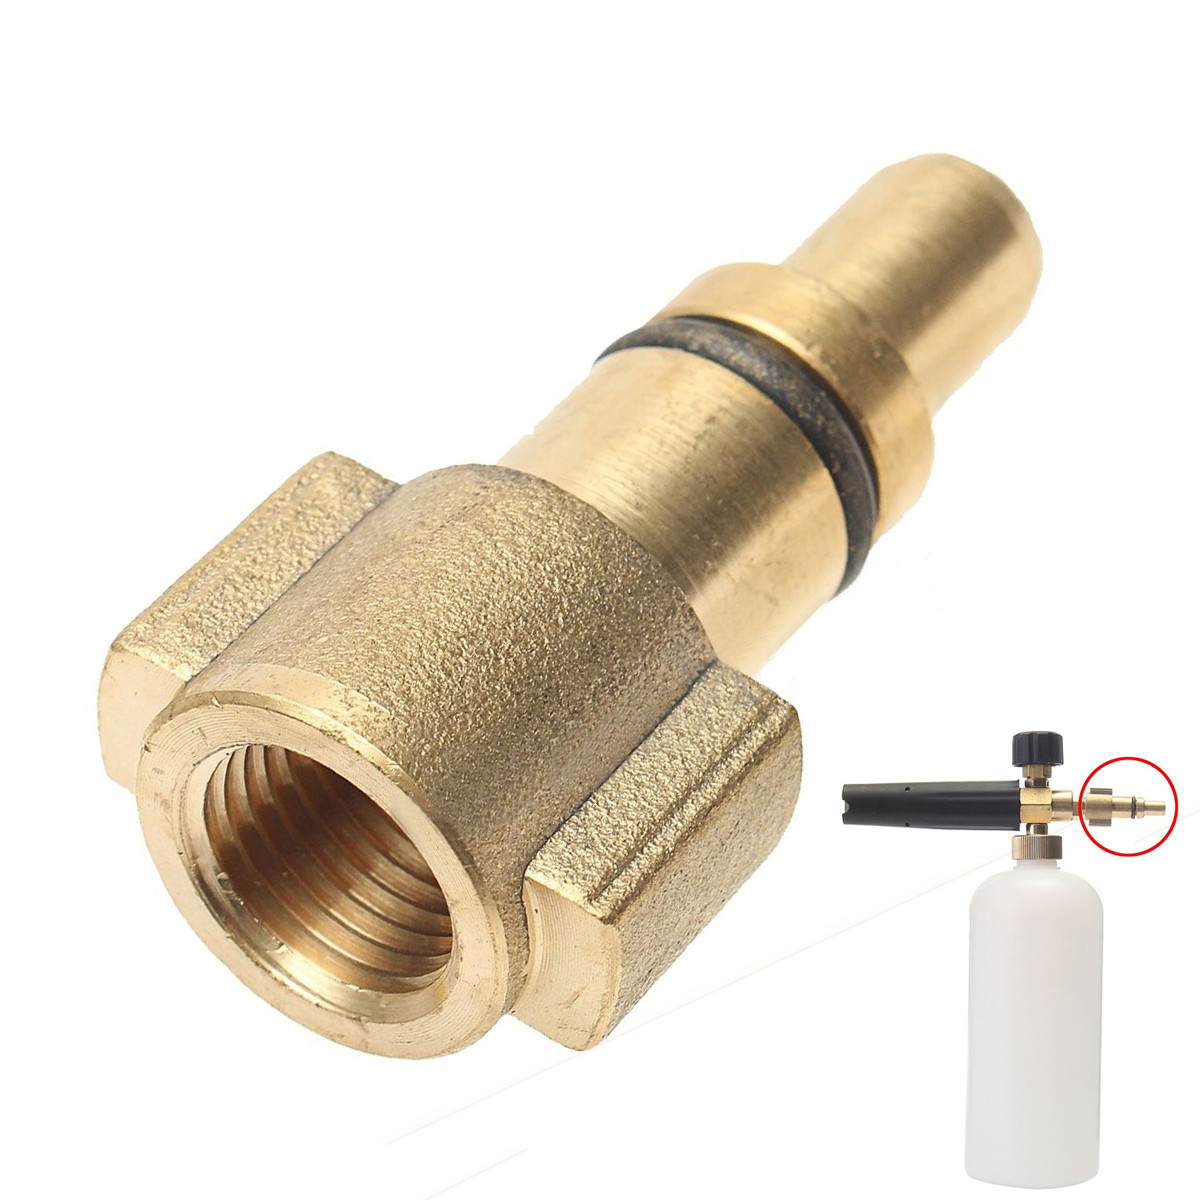 New Brass Snow Foam Lance Adaptor 1/4 Inch Female Car Pressure Washer Adapter Quick Connector For Lavor Snow Foam Lance